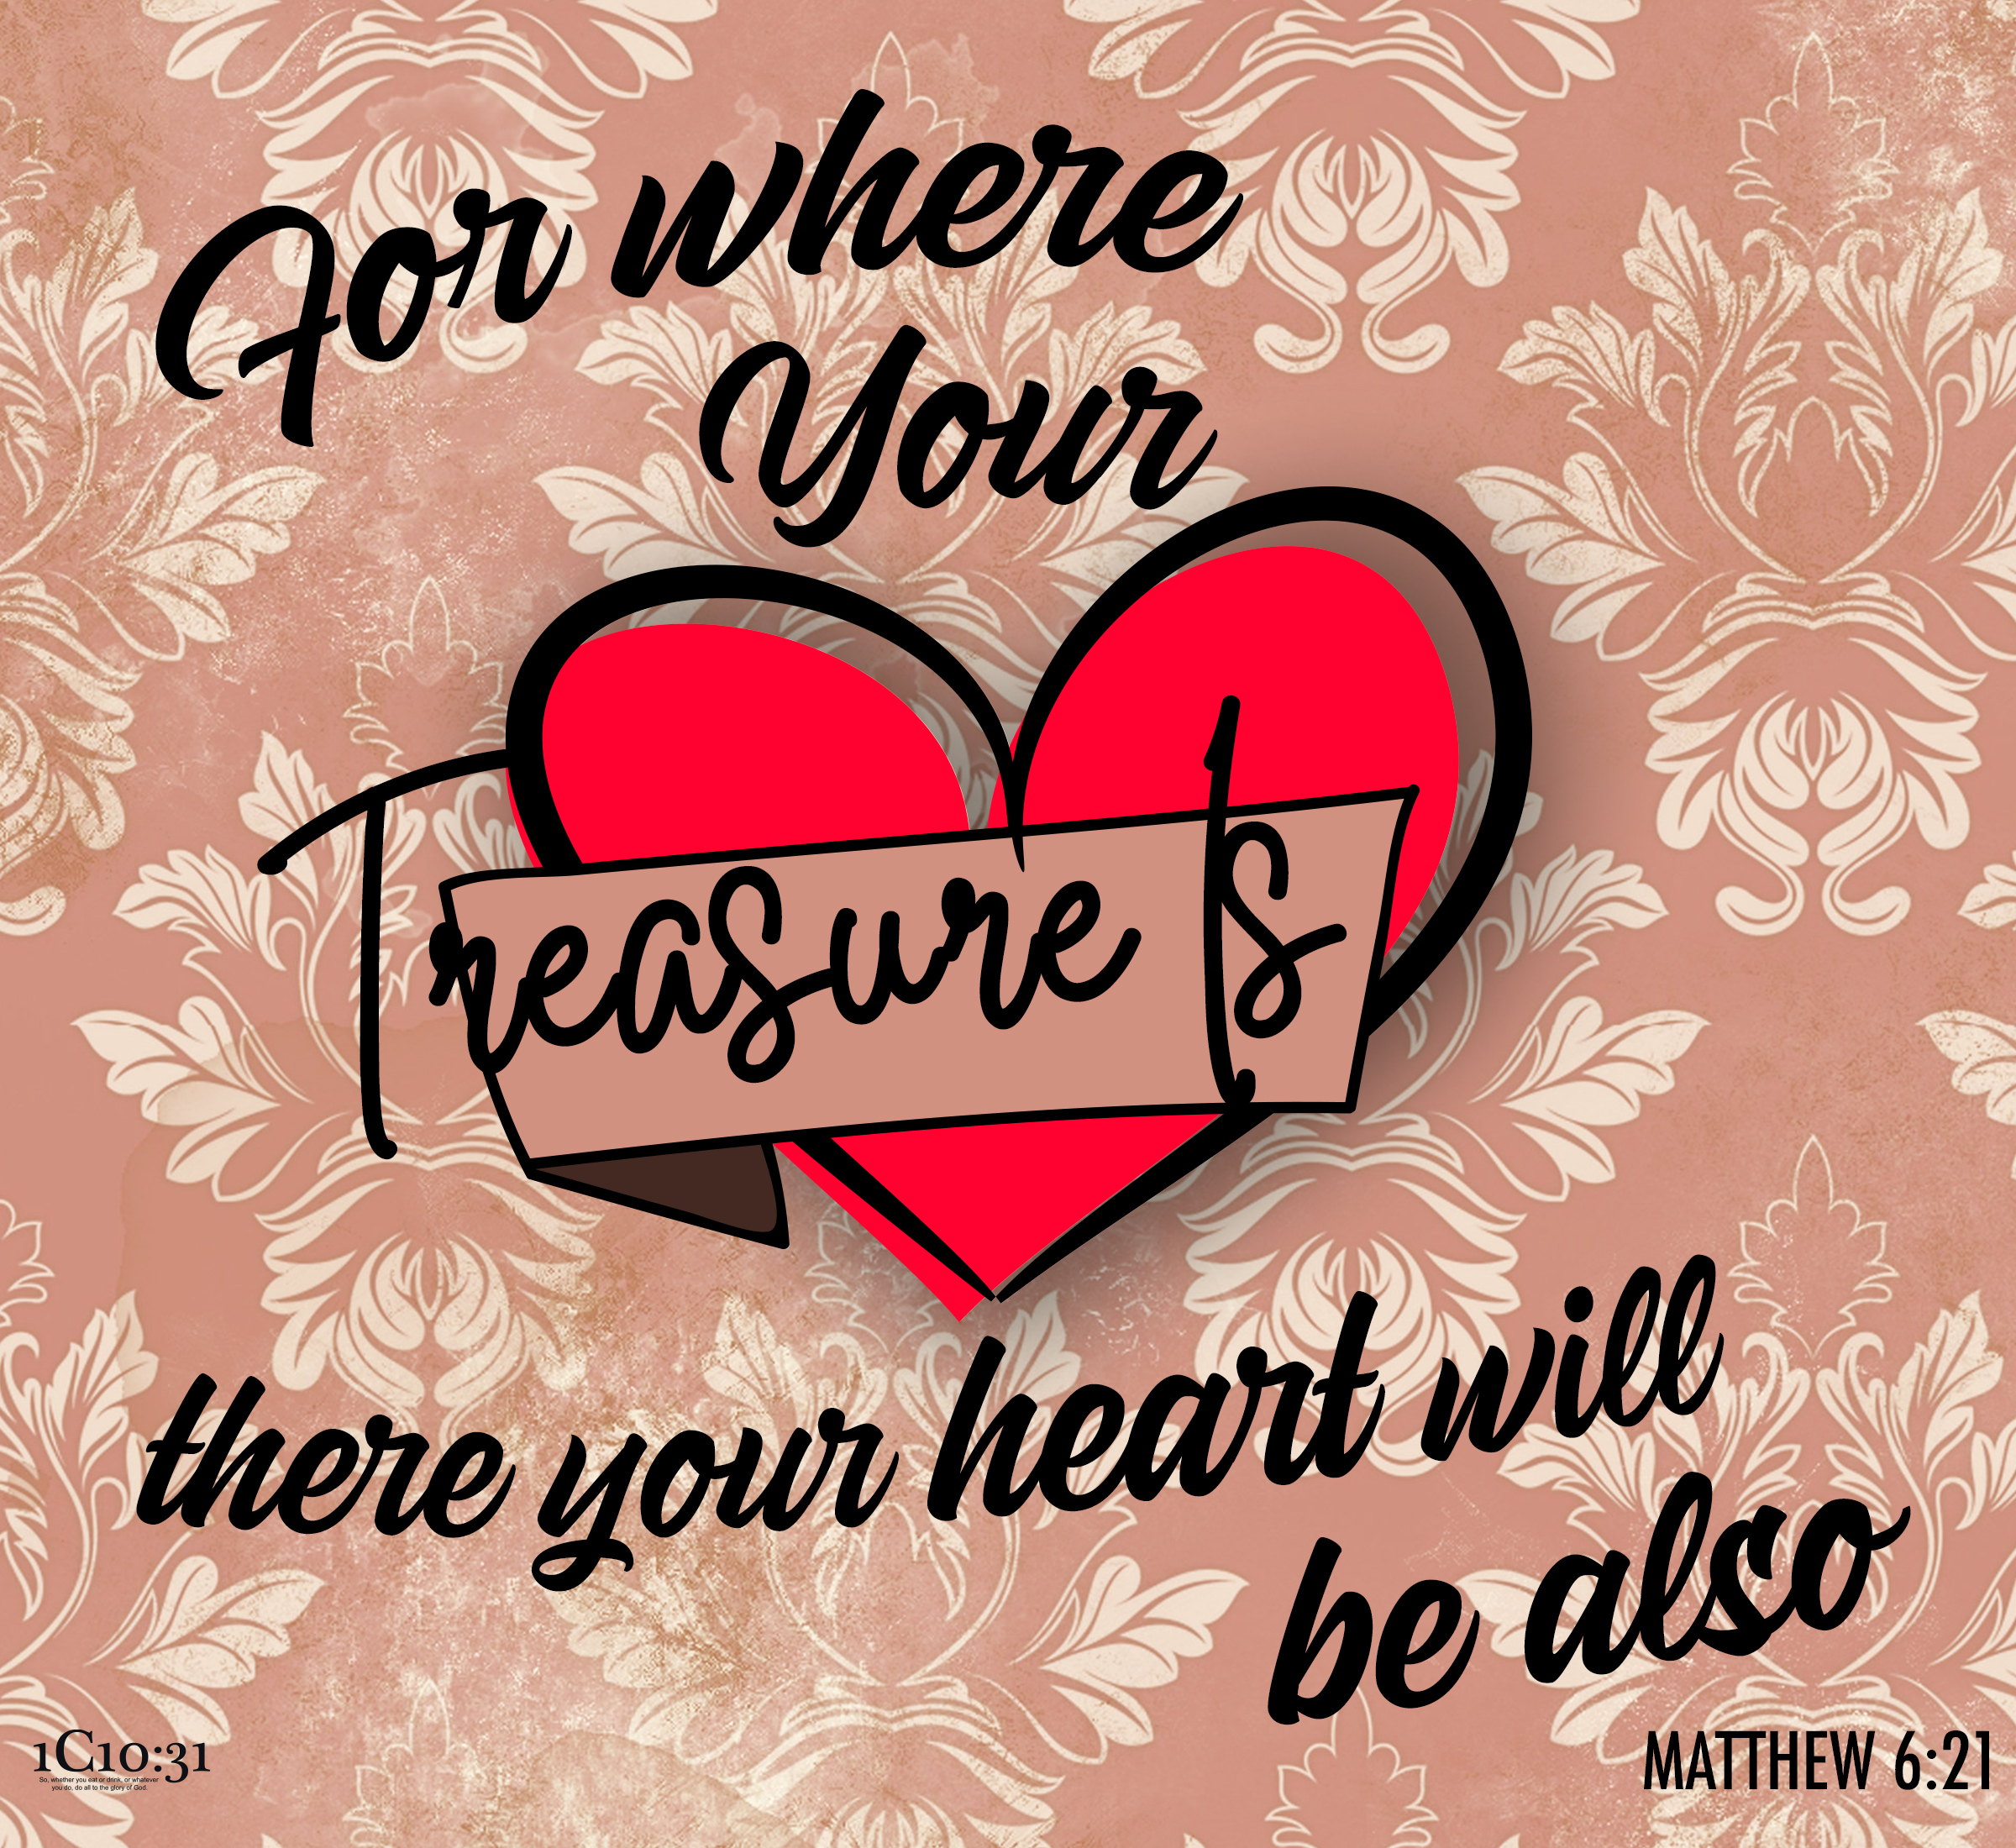 Matthew 6:21 (NIV) For where your treasure is, there your heart will be also.